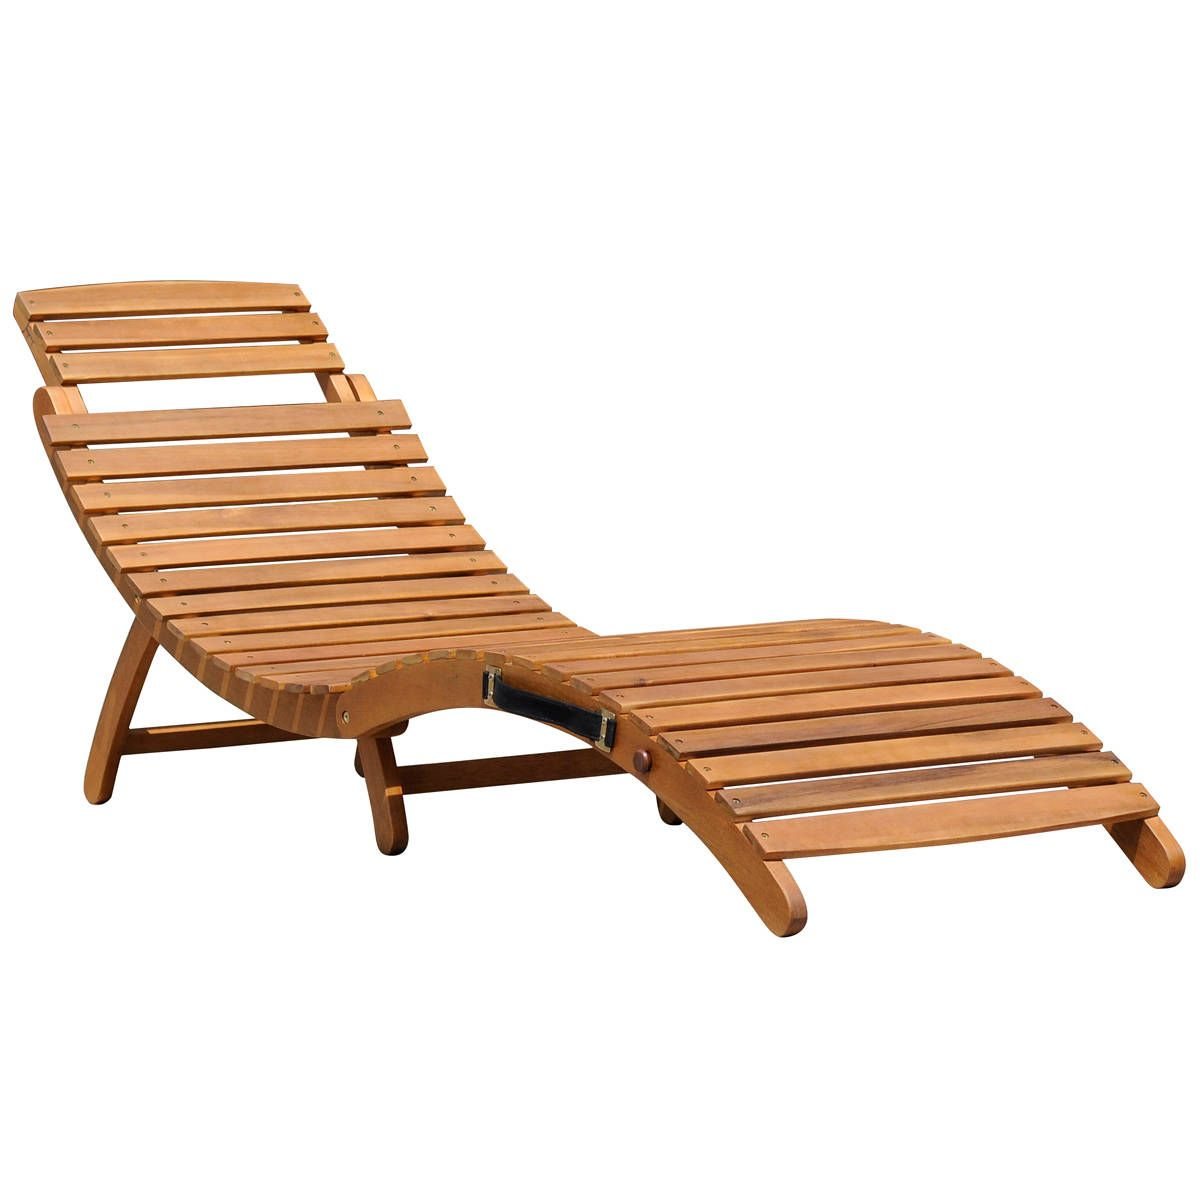 Bentley Garden Sun Loungers Wooden Curved